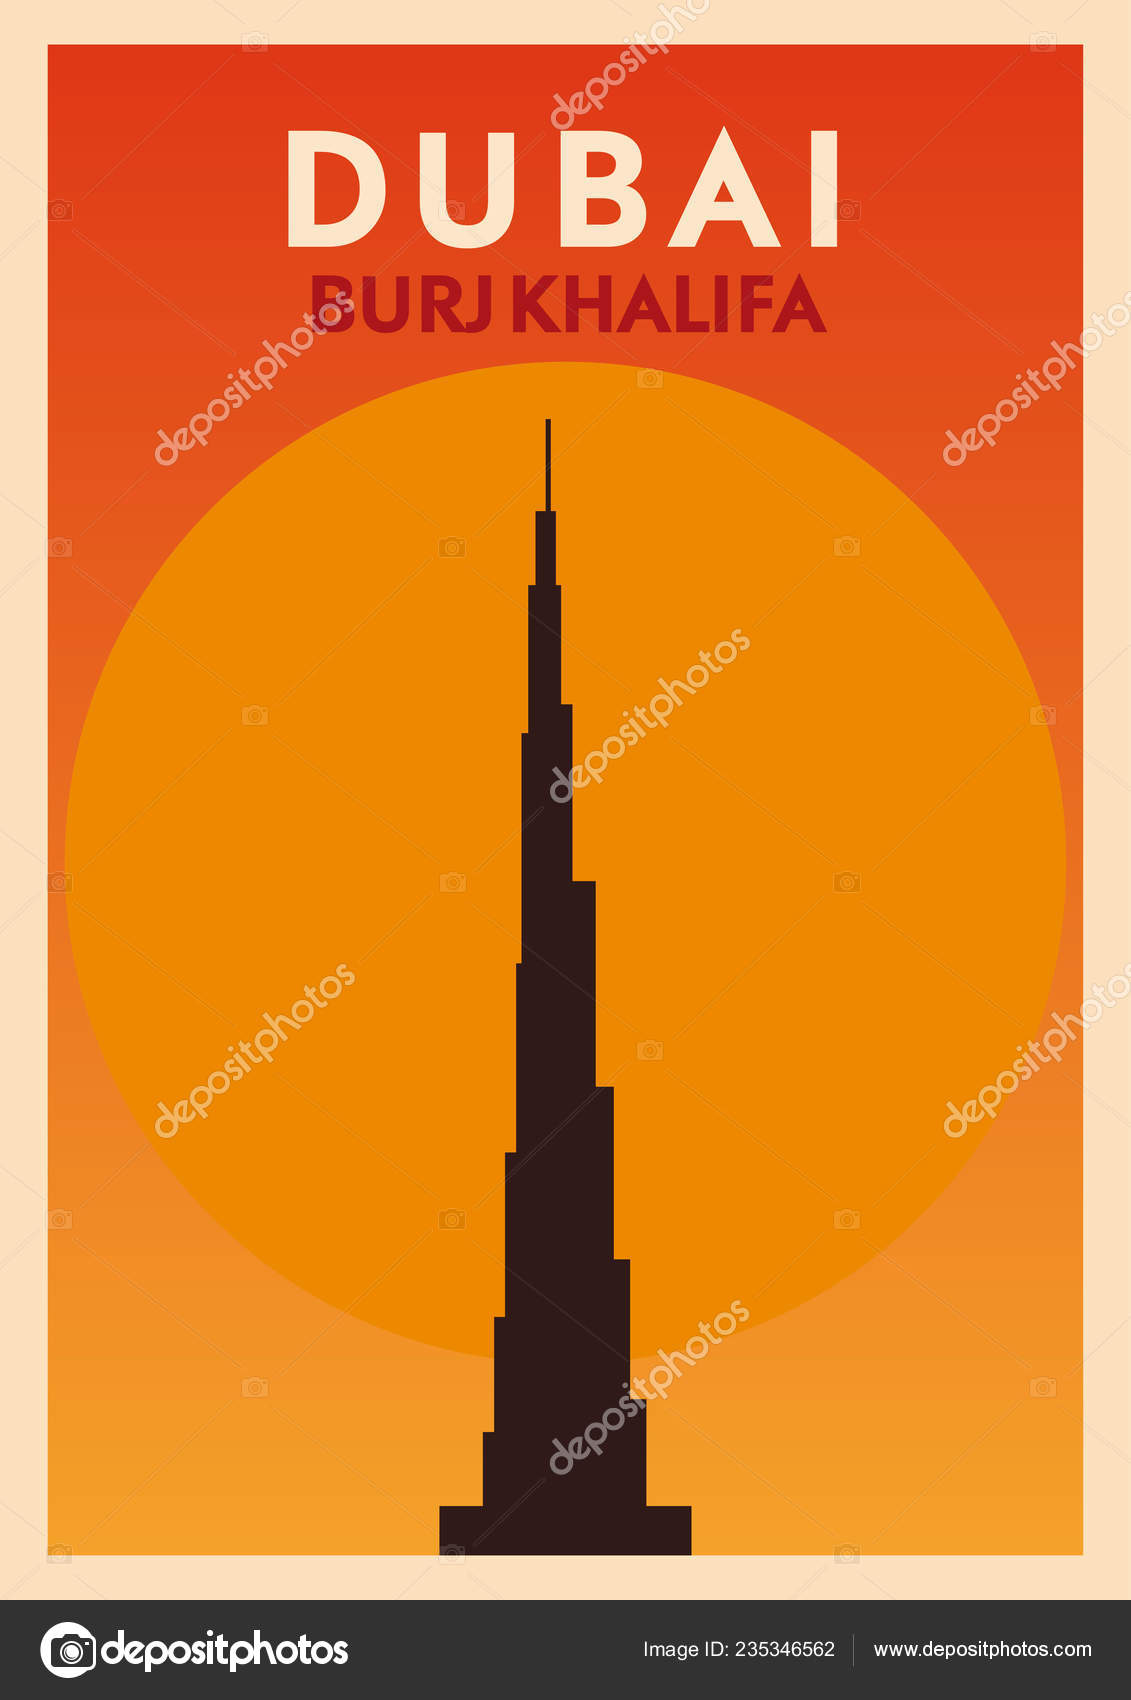 Landmark Design Dubai City Burj Khalifa Tower United Arab